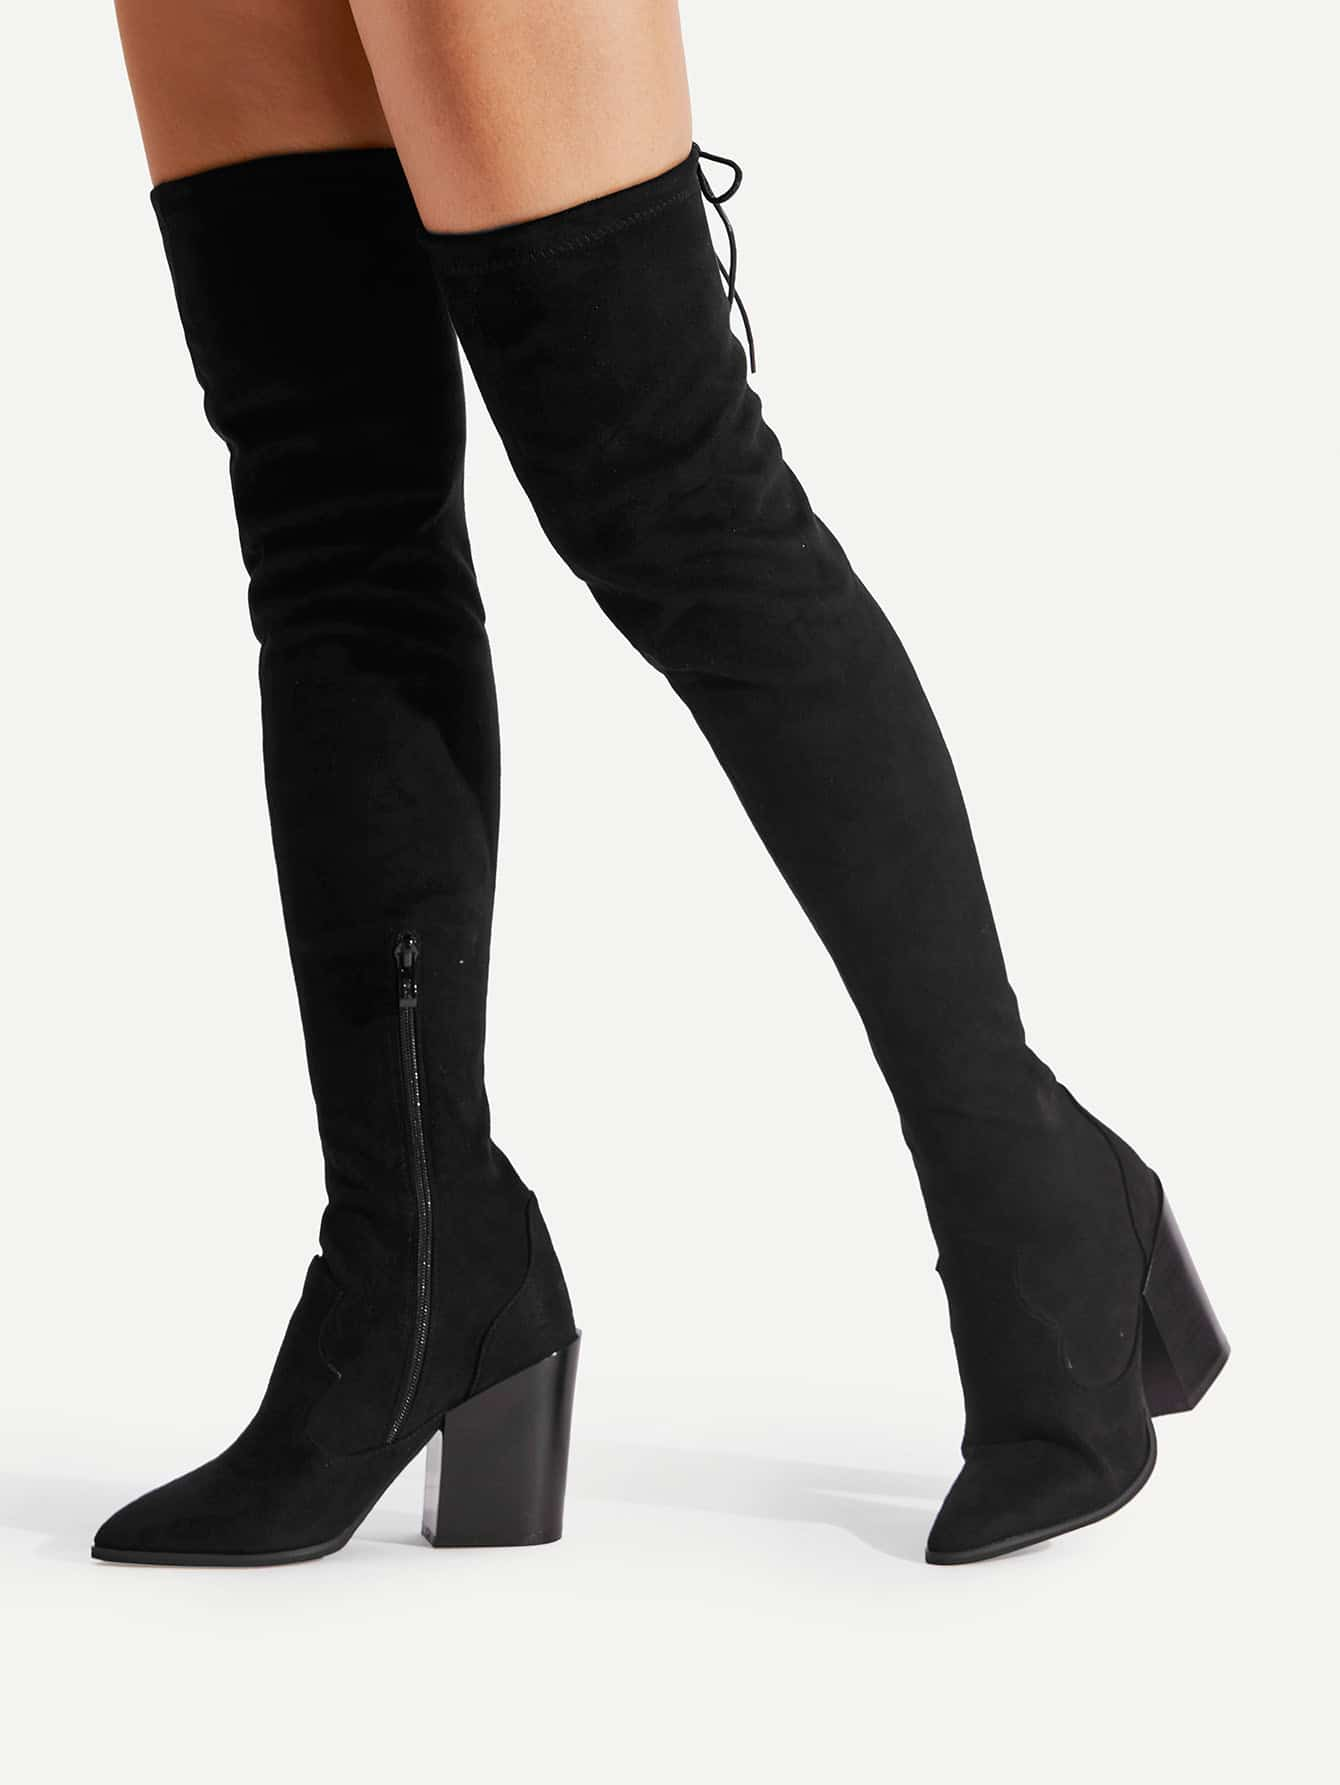 Pointed Toe Block Heeled Thigh High  Boots shoes17090711